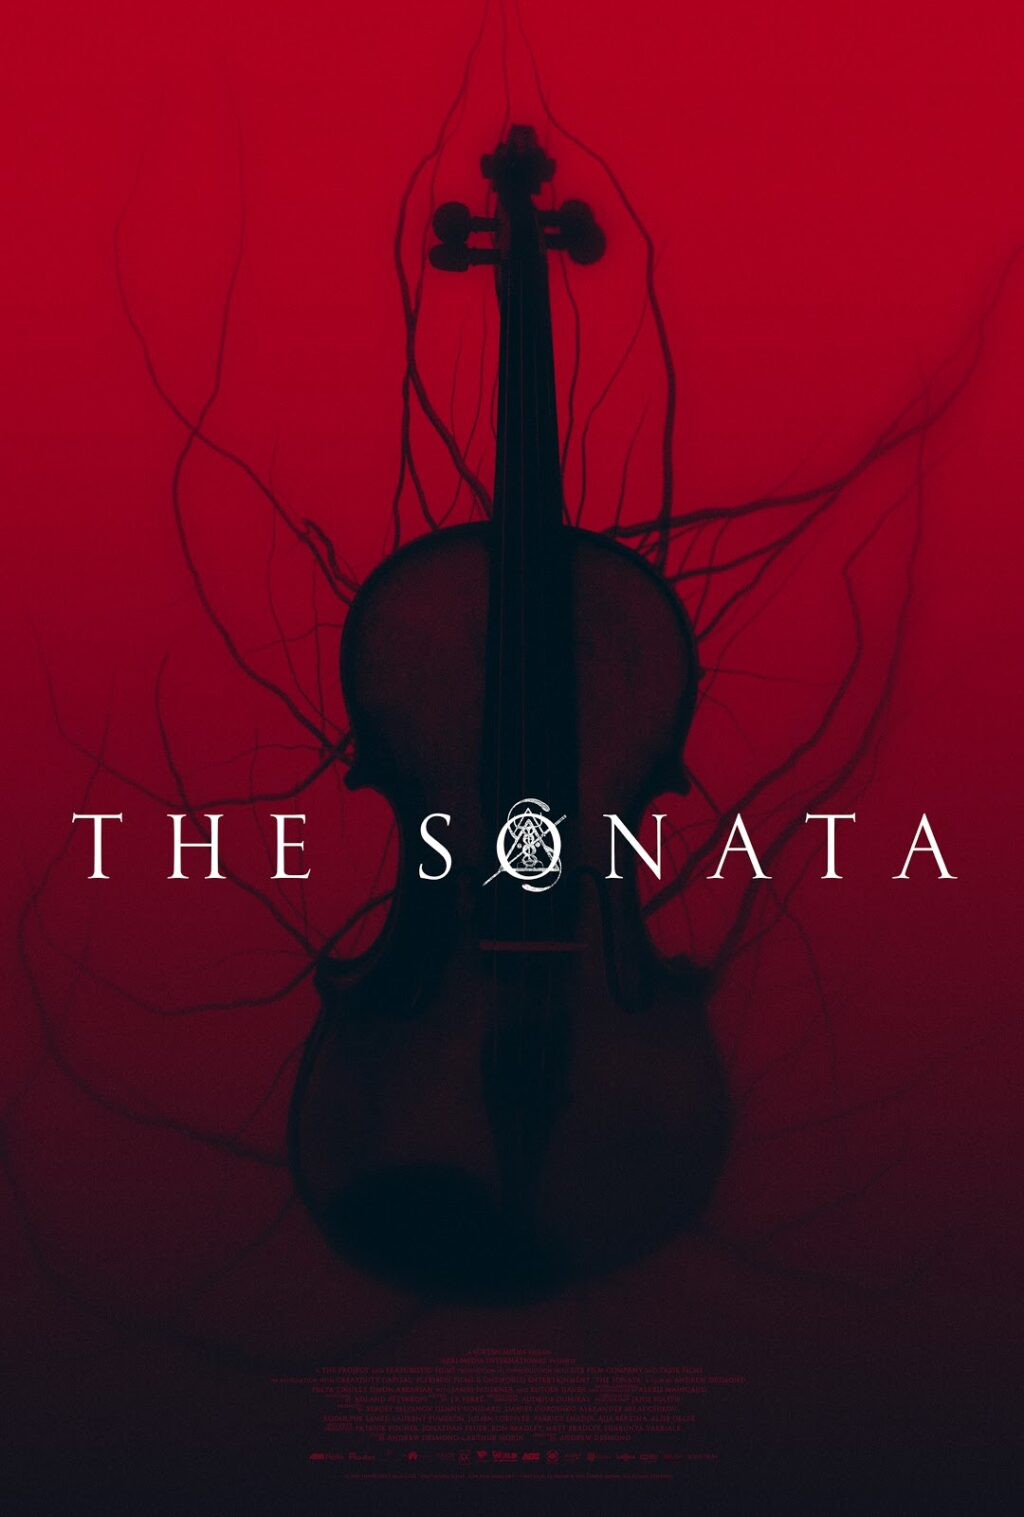 SONATA FINAL 1024x1517 - Trailer: THE SONATA Starring Freya Tingley & Rutger Hauer in Theaters and On Demand January 10th